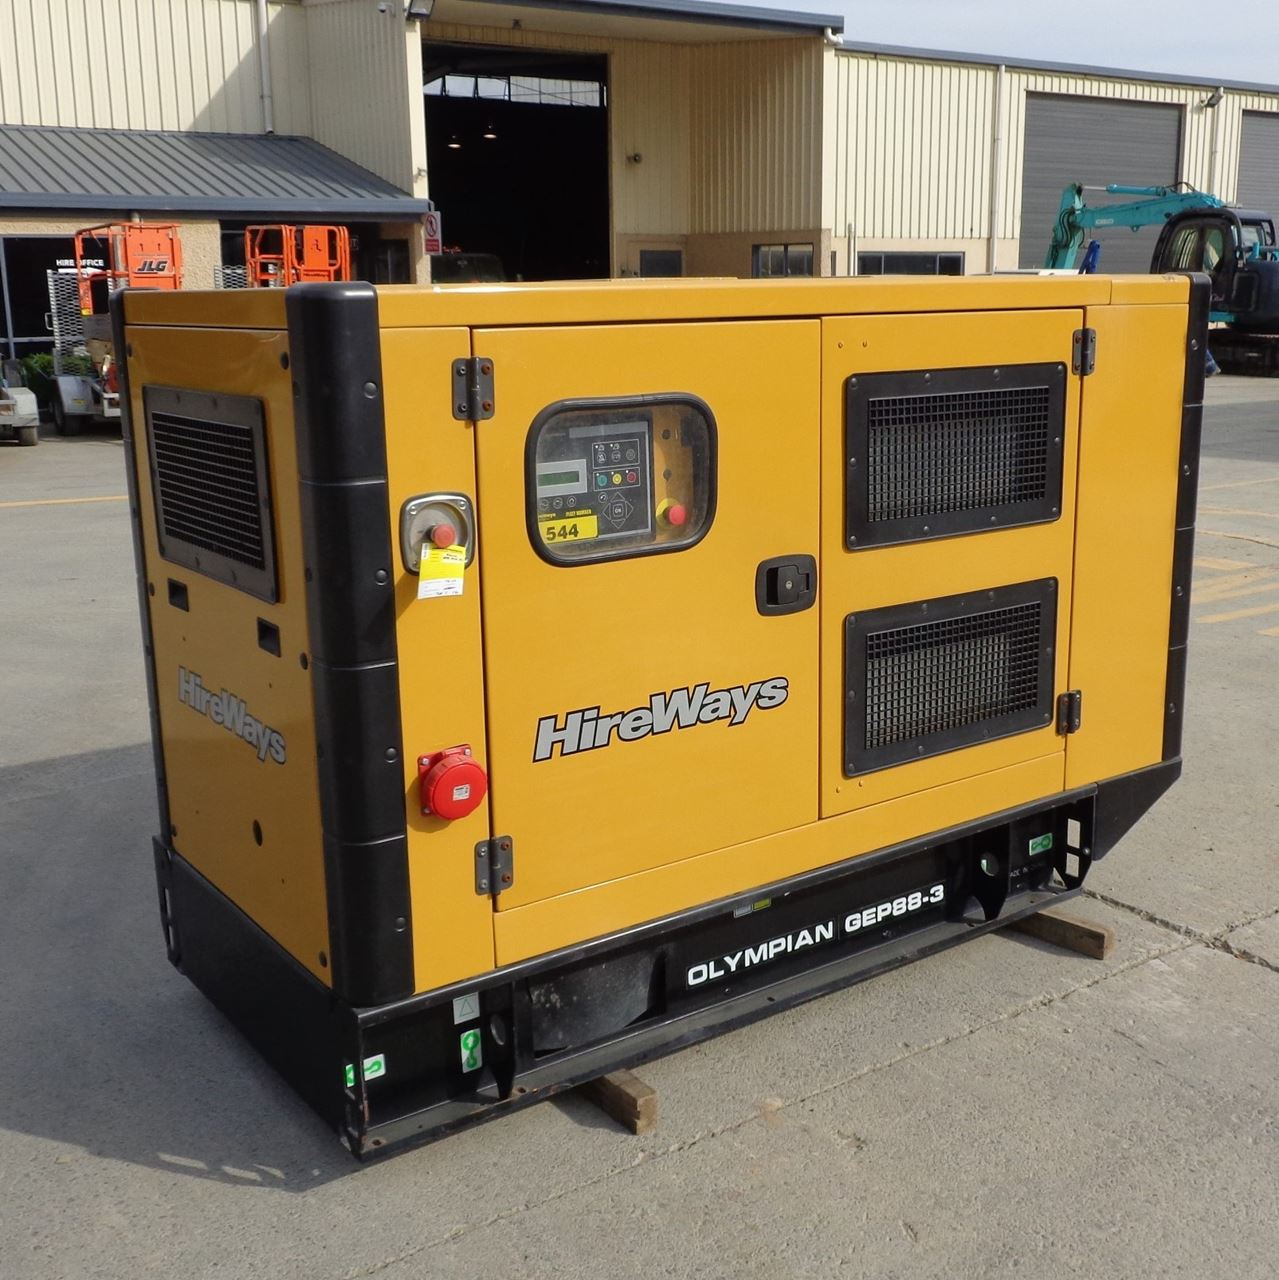 Hire & Rent 80 KVA Generator | Wellington, Palmerston North, NZ